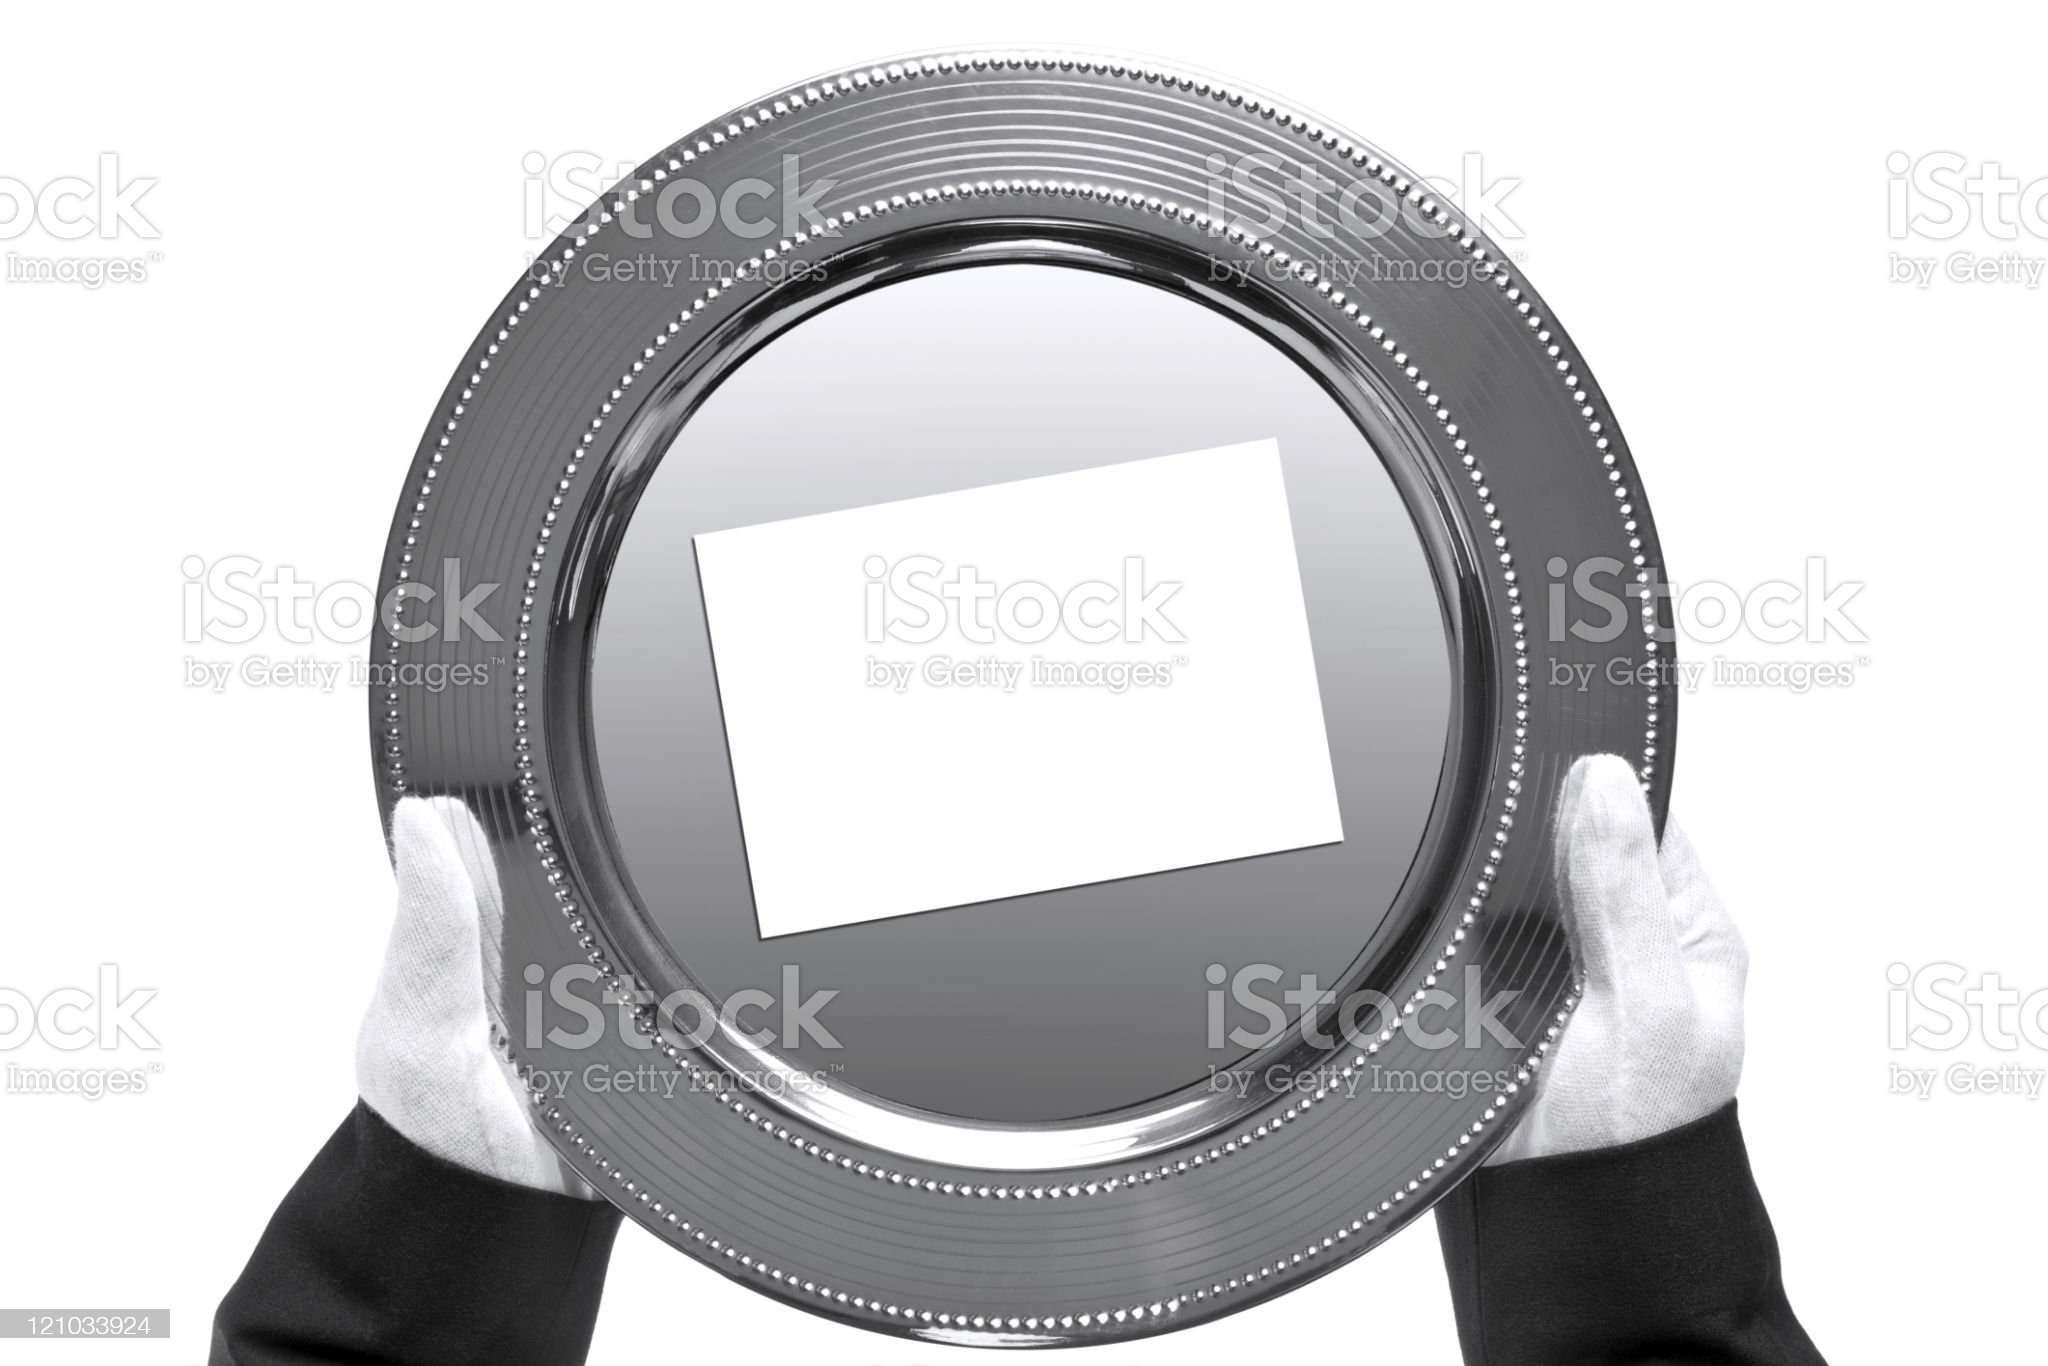 Butler holding a silver tray, shot from above royalty-free stock photo